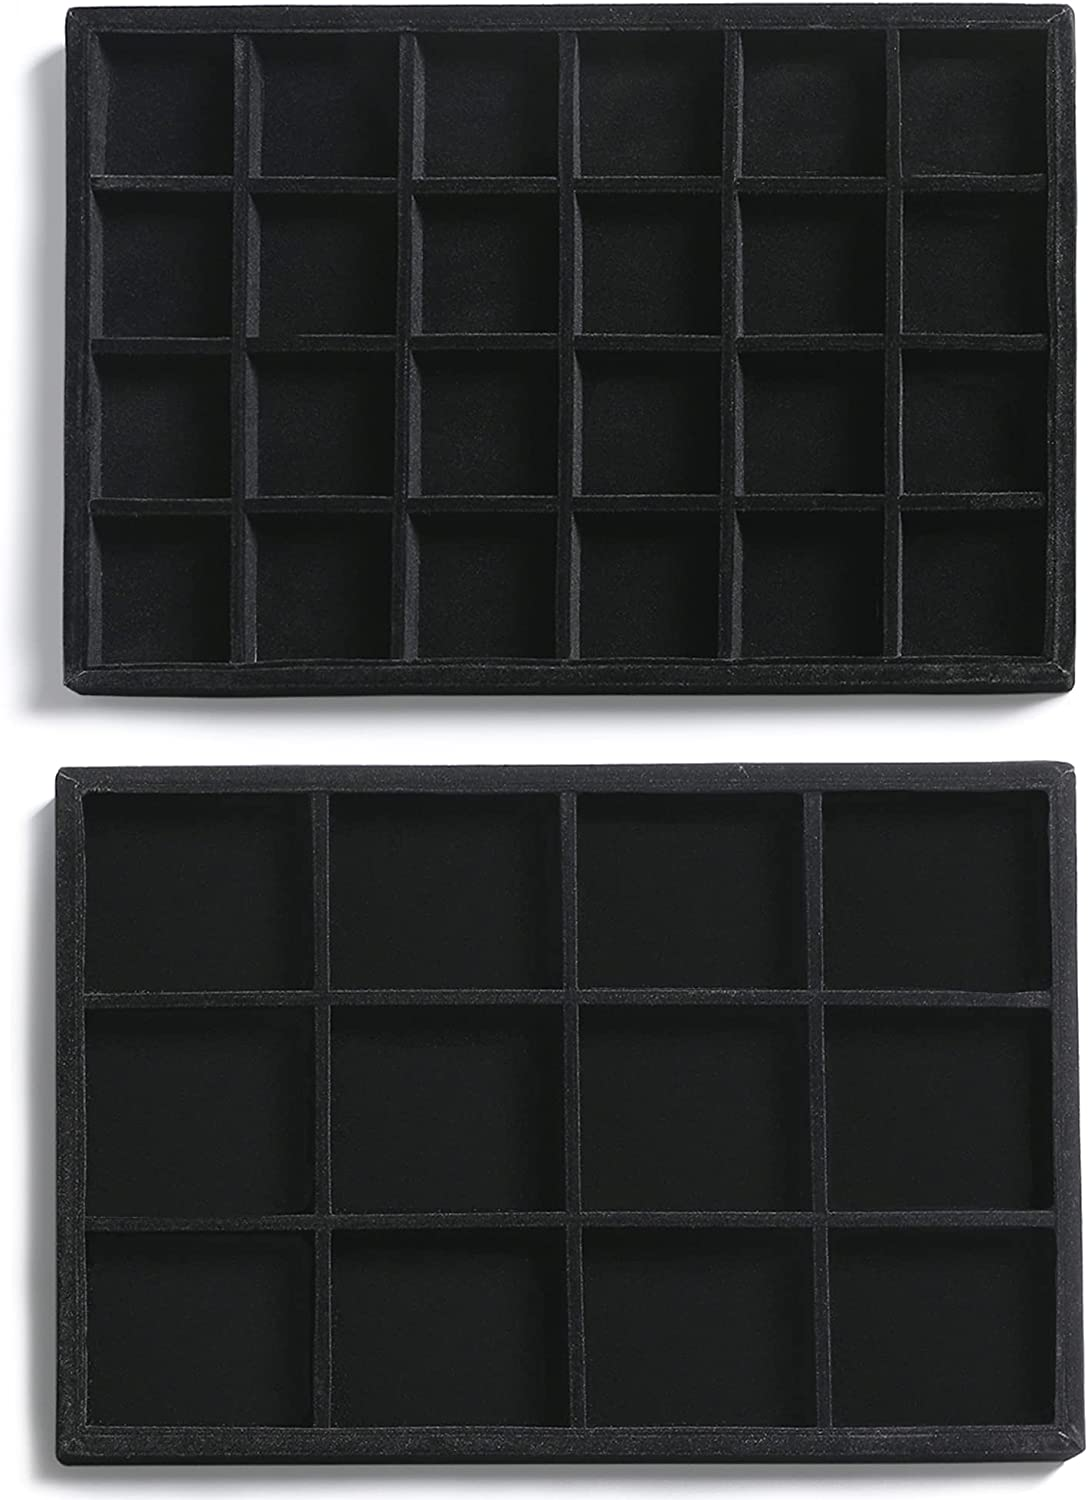 Frebeauty Stackable Velvet Jewelry Organizer Trays for Drawers Inserts Jewelry Storage Tray Display Case, Stud Earrings Bracelets Necklace Rings Accessories Trays for Women Girls(Set of 2)(Black). : Clothing, Shoes & Jewelry